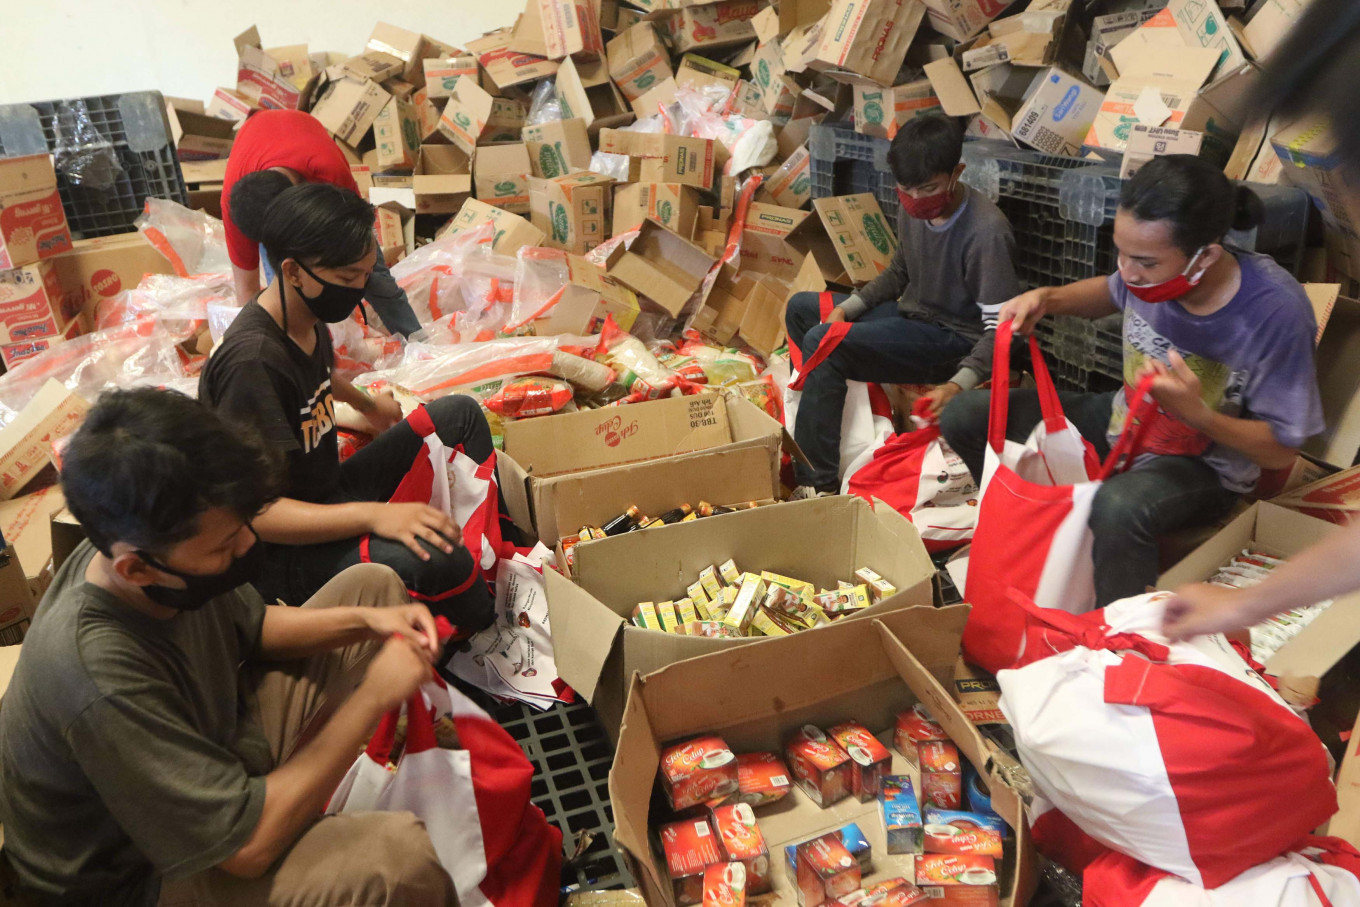 COVID-19: Jokowi urges ministry to reach out to poor families amid uneven aid distribution